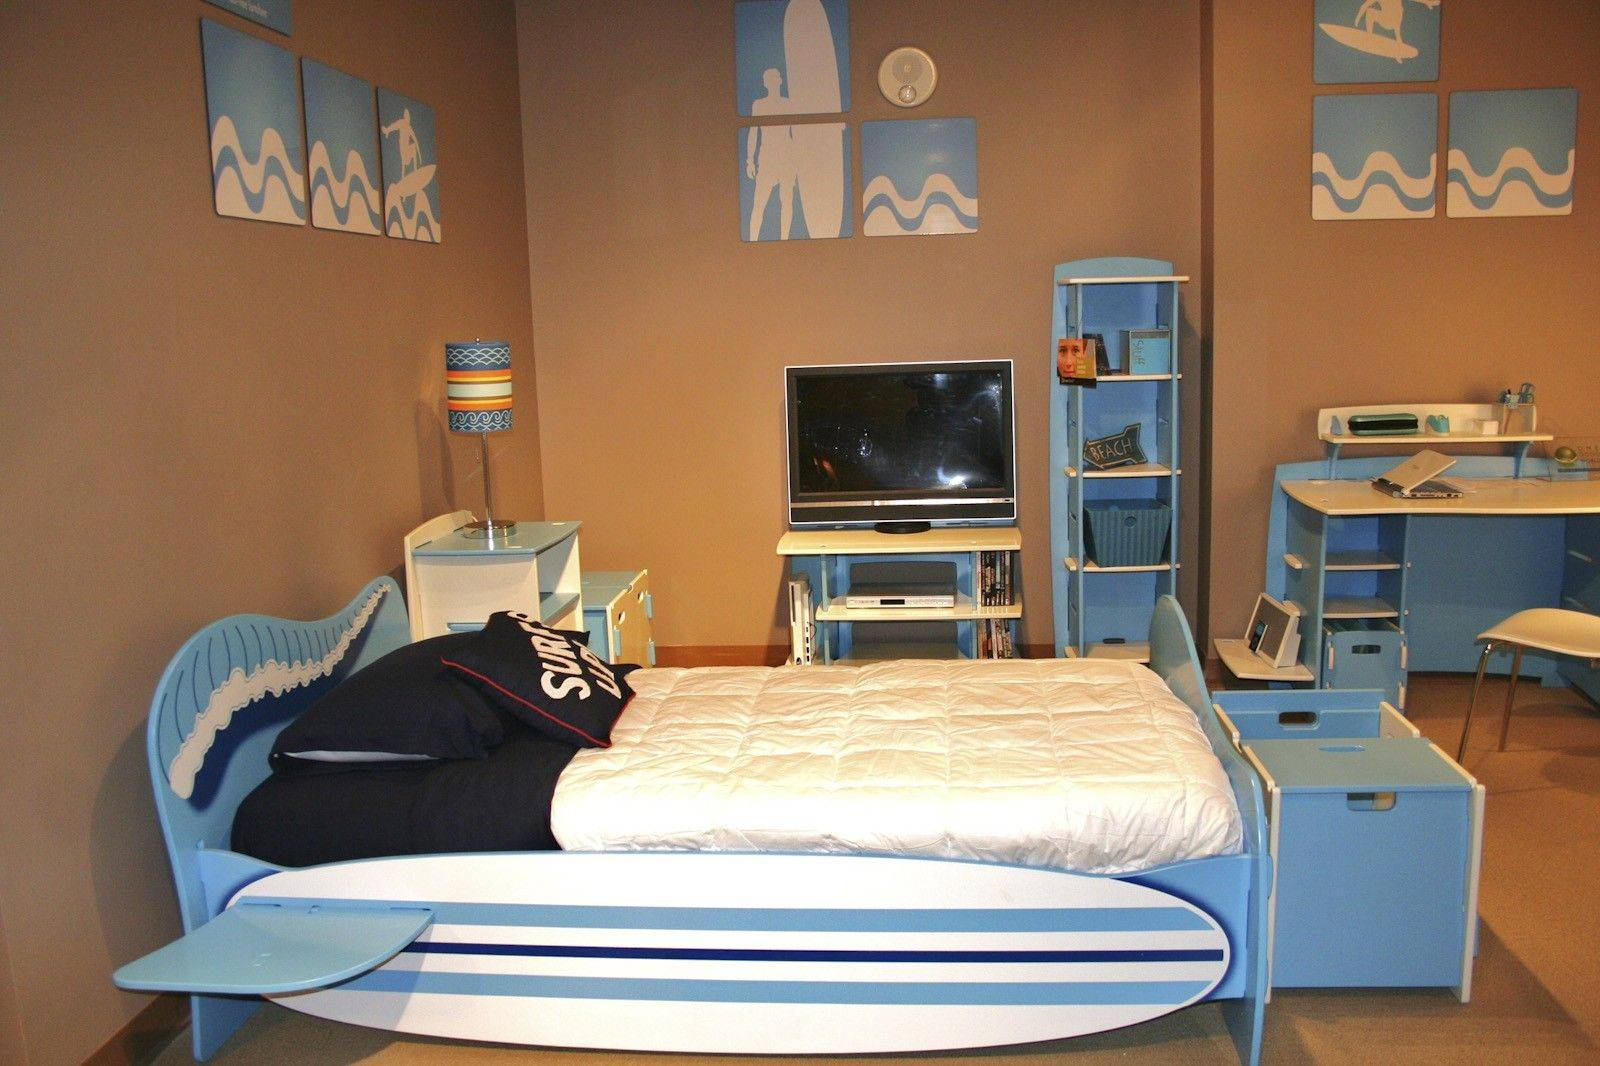 The Legare Surfer Bedroom And Bed Was One Of The Items On Display Recently  At The